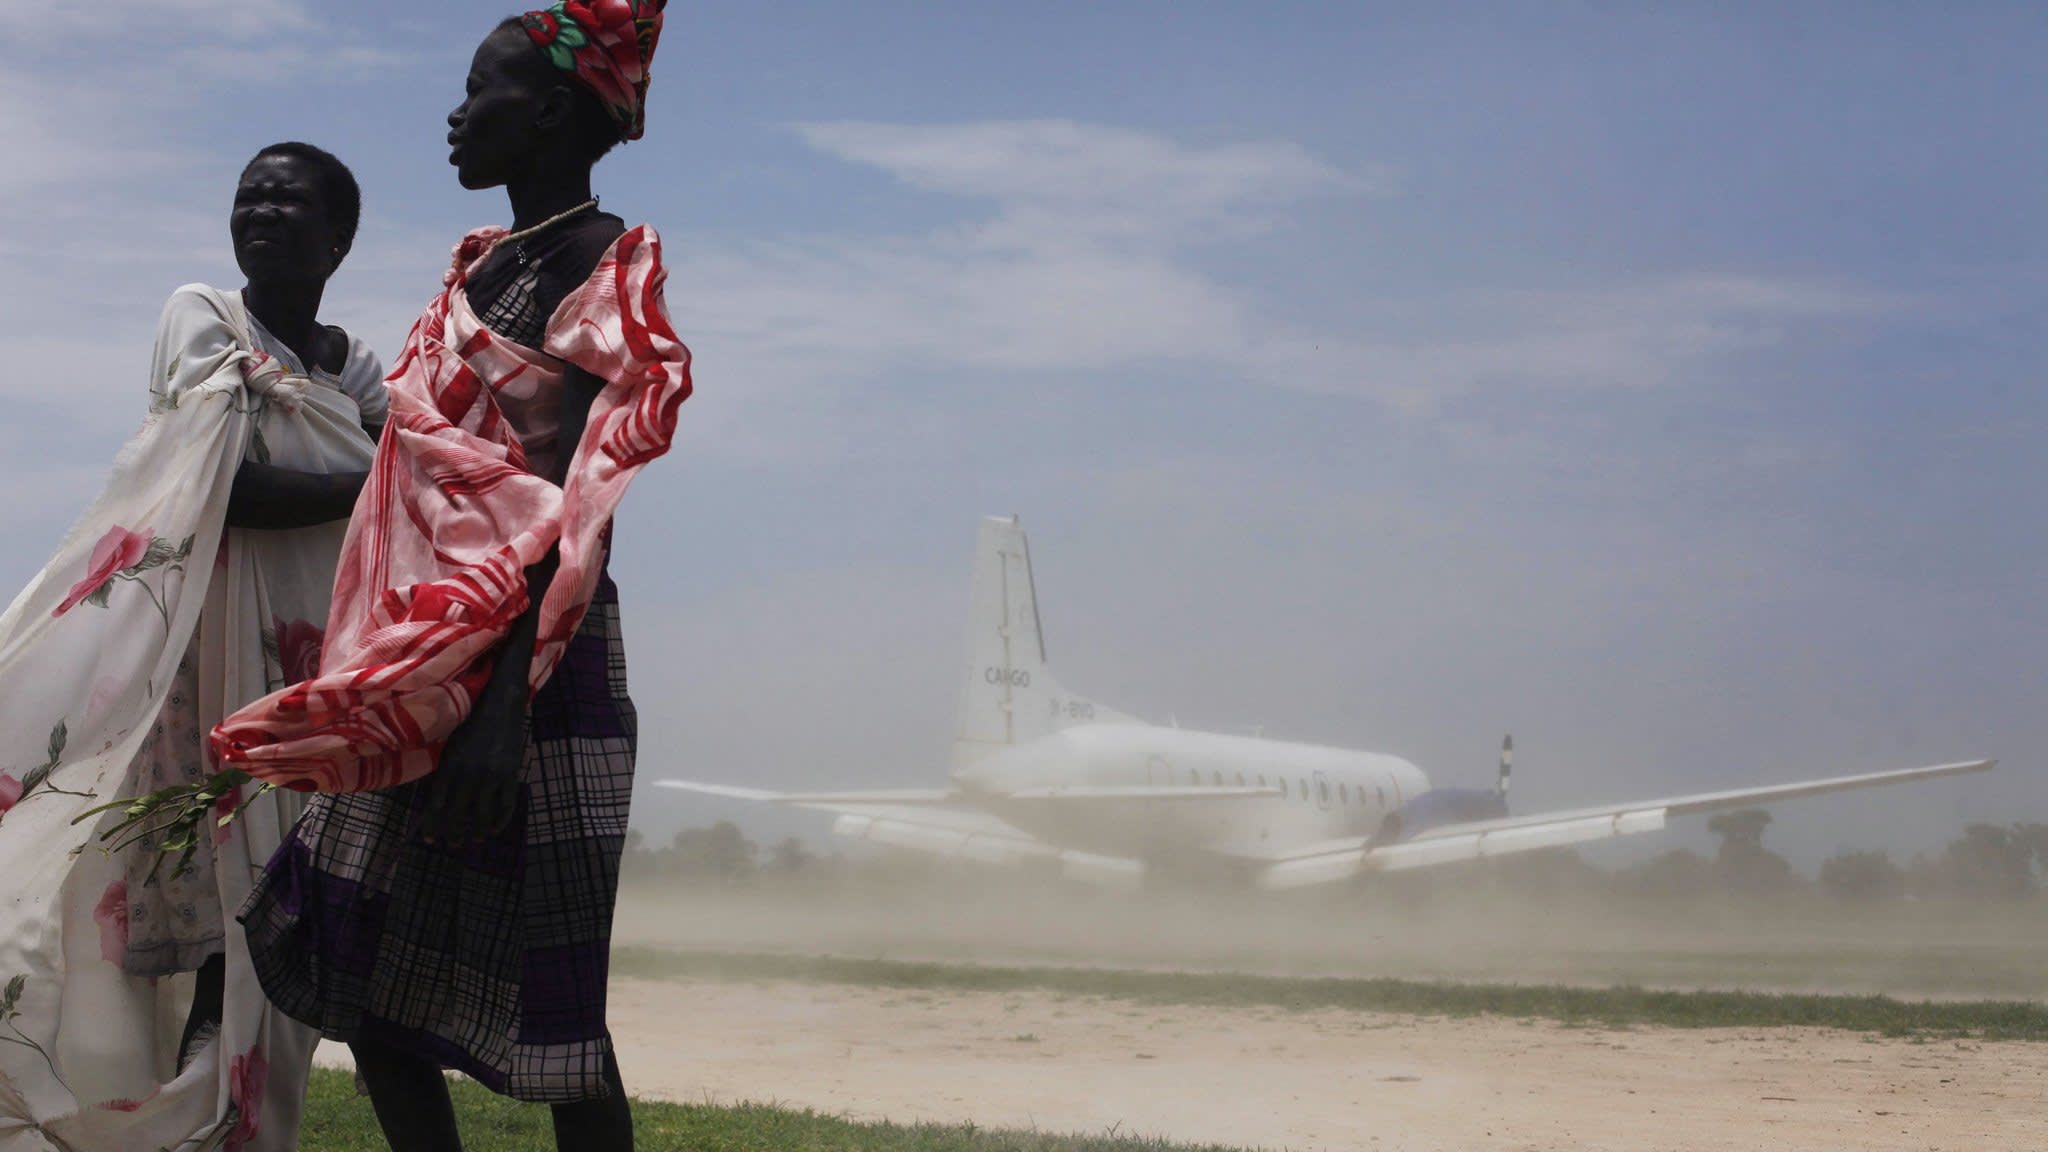 Women try to avoid dust as a plane, carrying nutrition supplements brought in by Medecins Sans Frontieres (MSF), lands in Leer July 15, 2014. The MSF hospital was giving service to over 200,000 people before it was looted and burned during fighting in late January and early February. The Hospital currently attends 1400 malnourished children according to Medecins Sans Frontieres. REUTERS/Andreea Campeanu (SOUTH SUDAN - Tags: HEALTH POLITICS SOCIETY FOOD TRANSPORT TPX IMAGES OF THE DAY) - RTR3YSC7